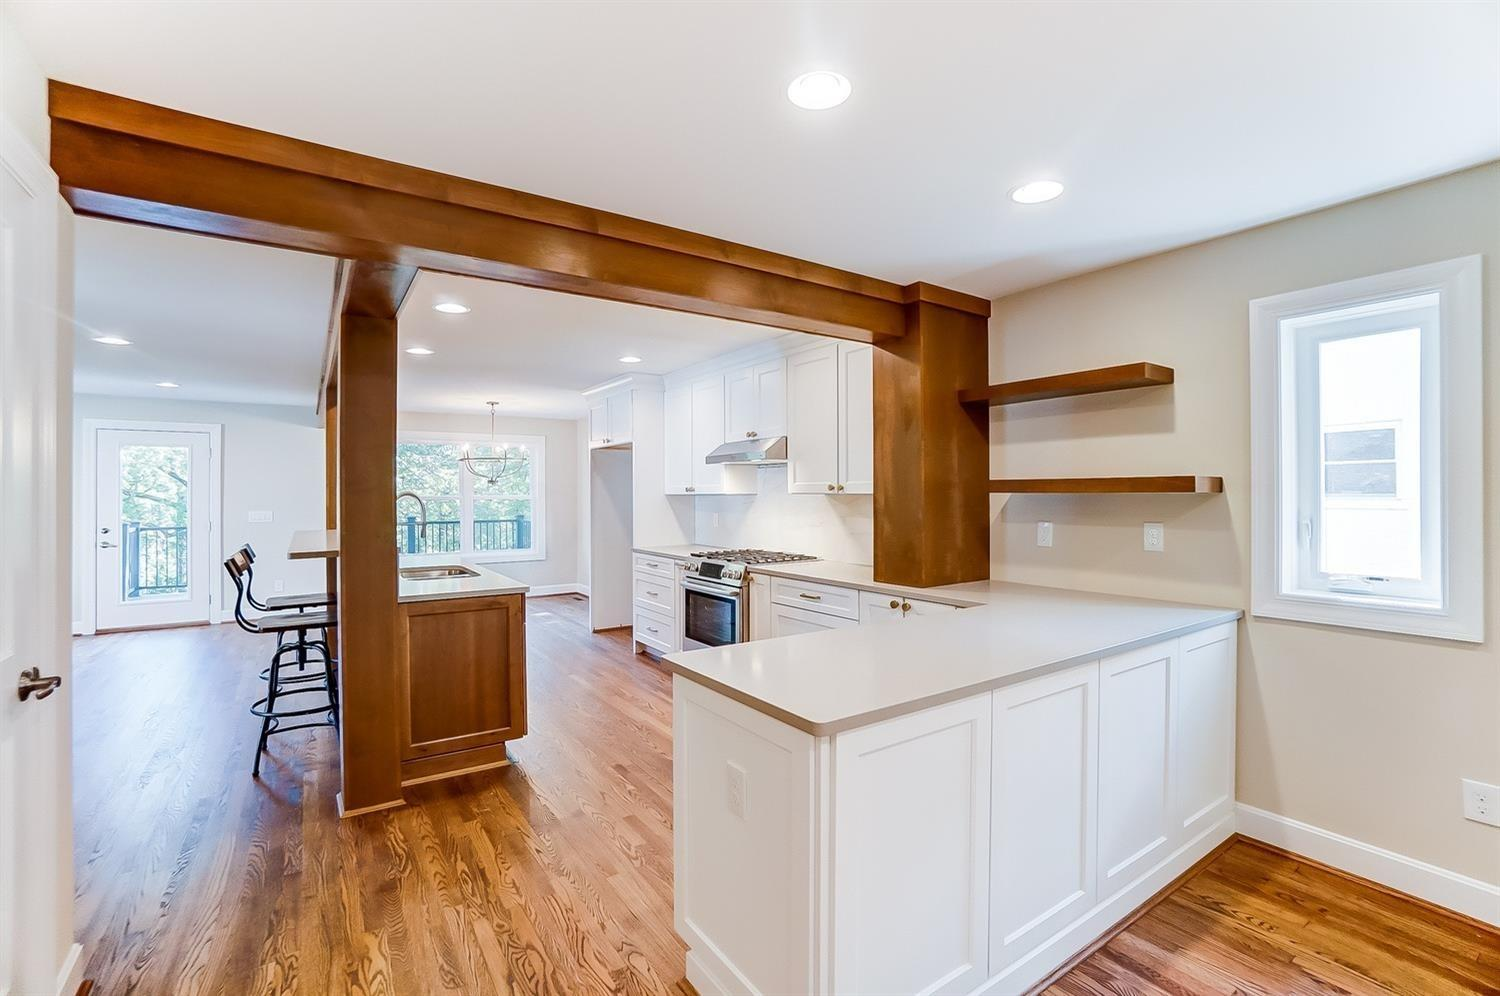 1st floor, kitchen alternate view. Wood beams allow visualization of end of original 1950 home and artfully provide important structural support.